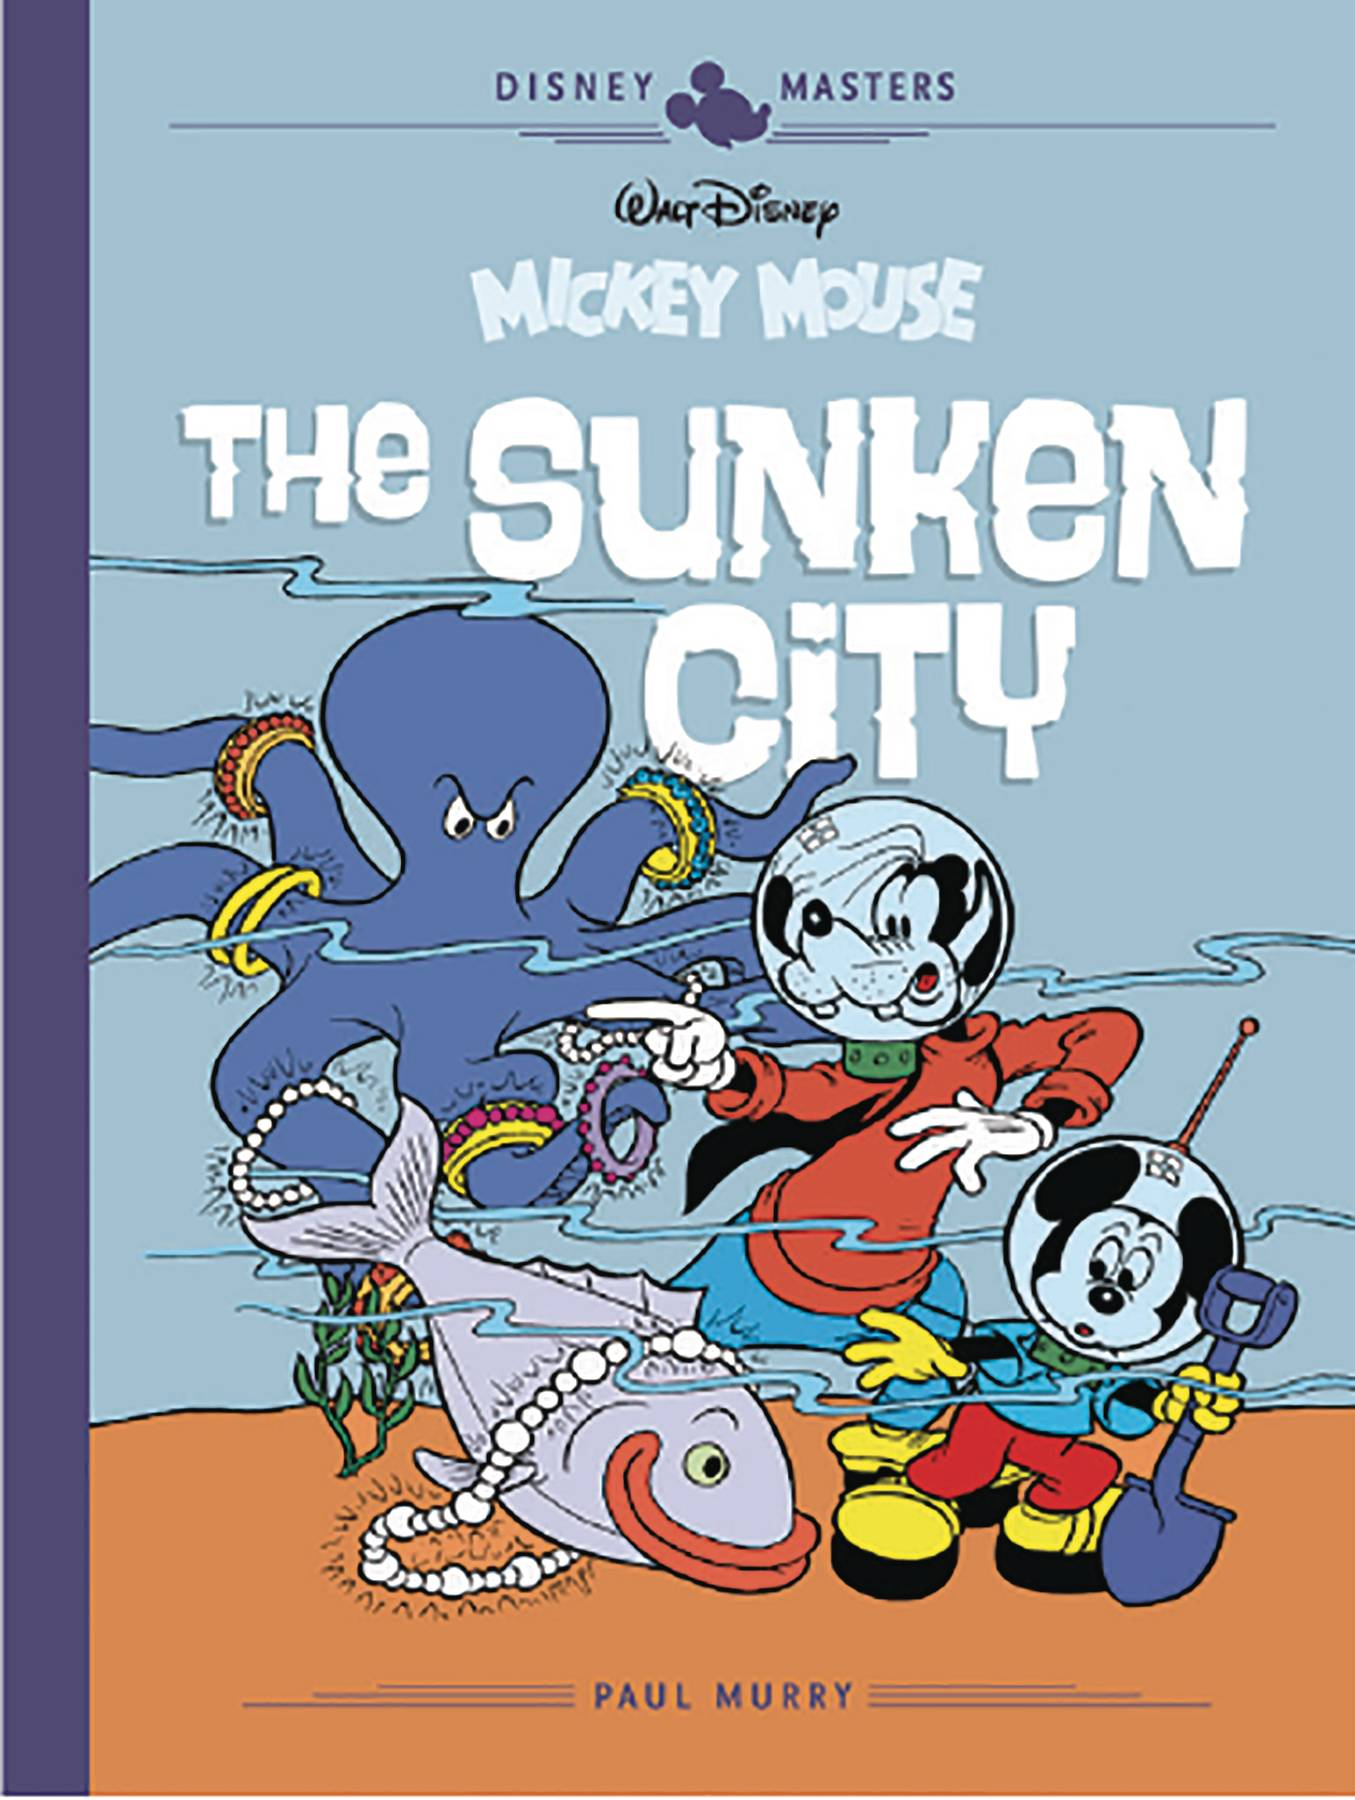 DISNEY MASTERS HC 13 MURRY FALLBERG MOUSE SUNKEN CITY